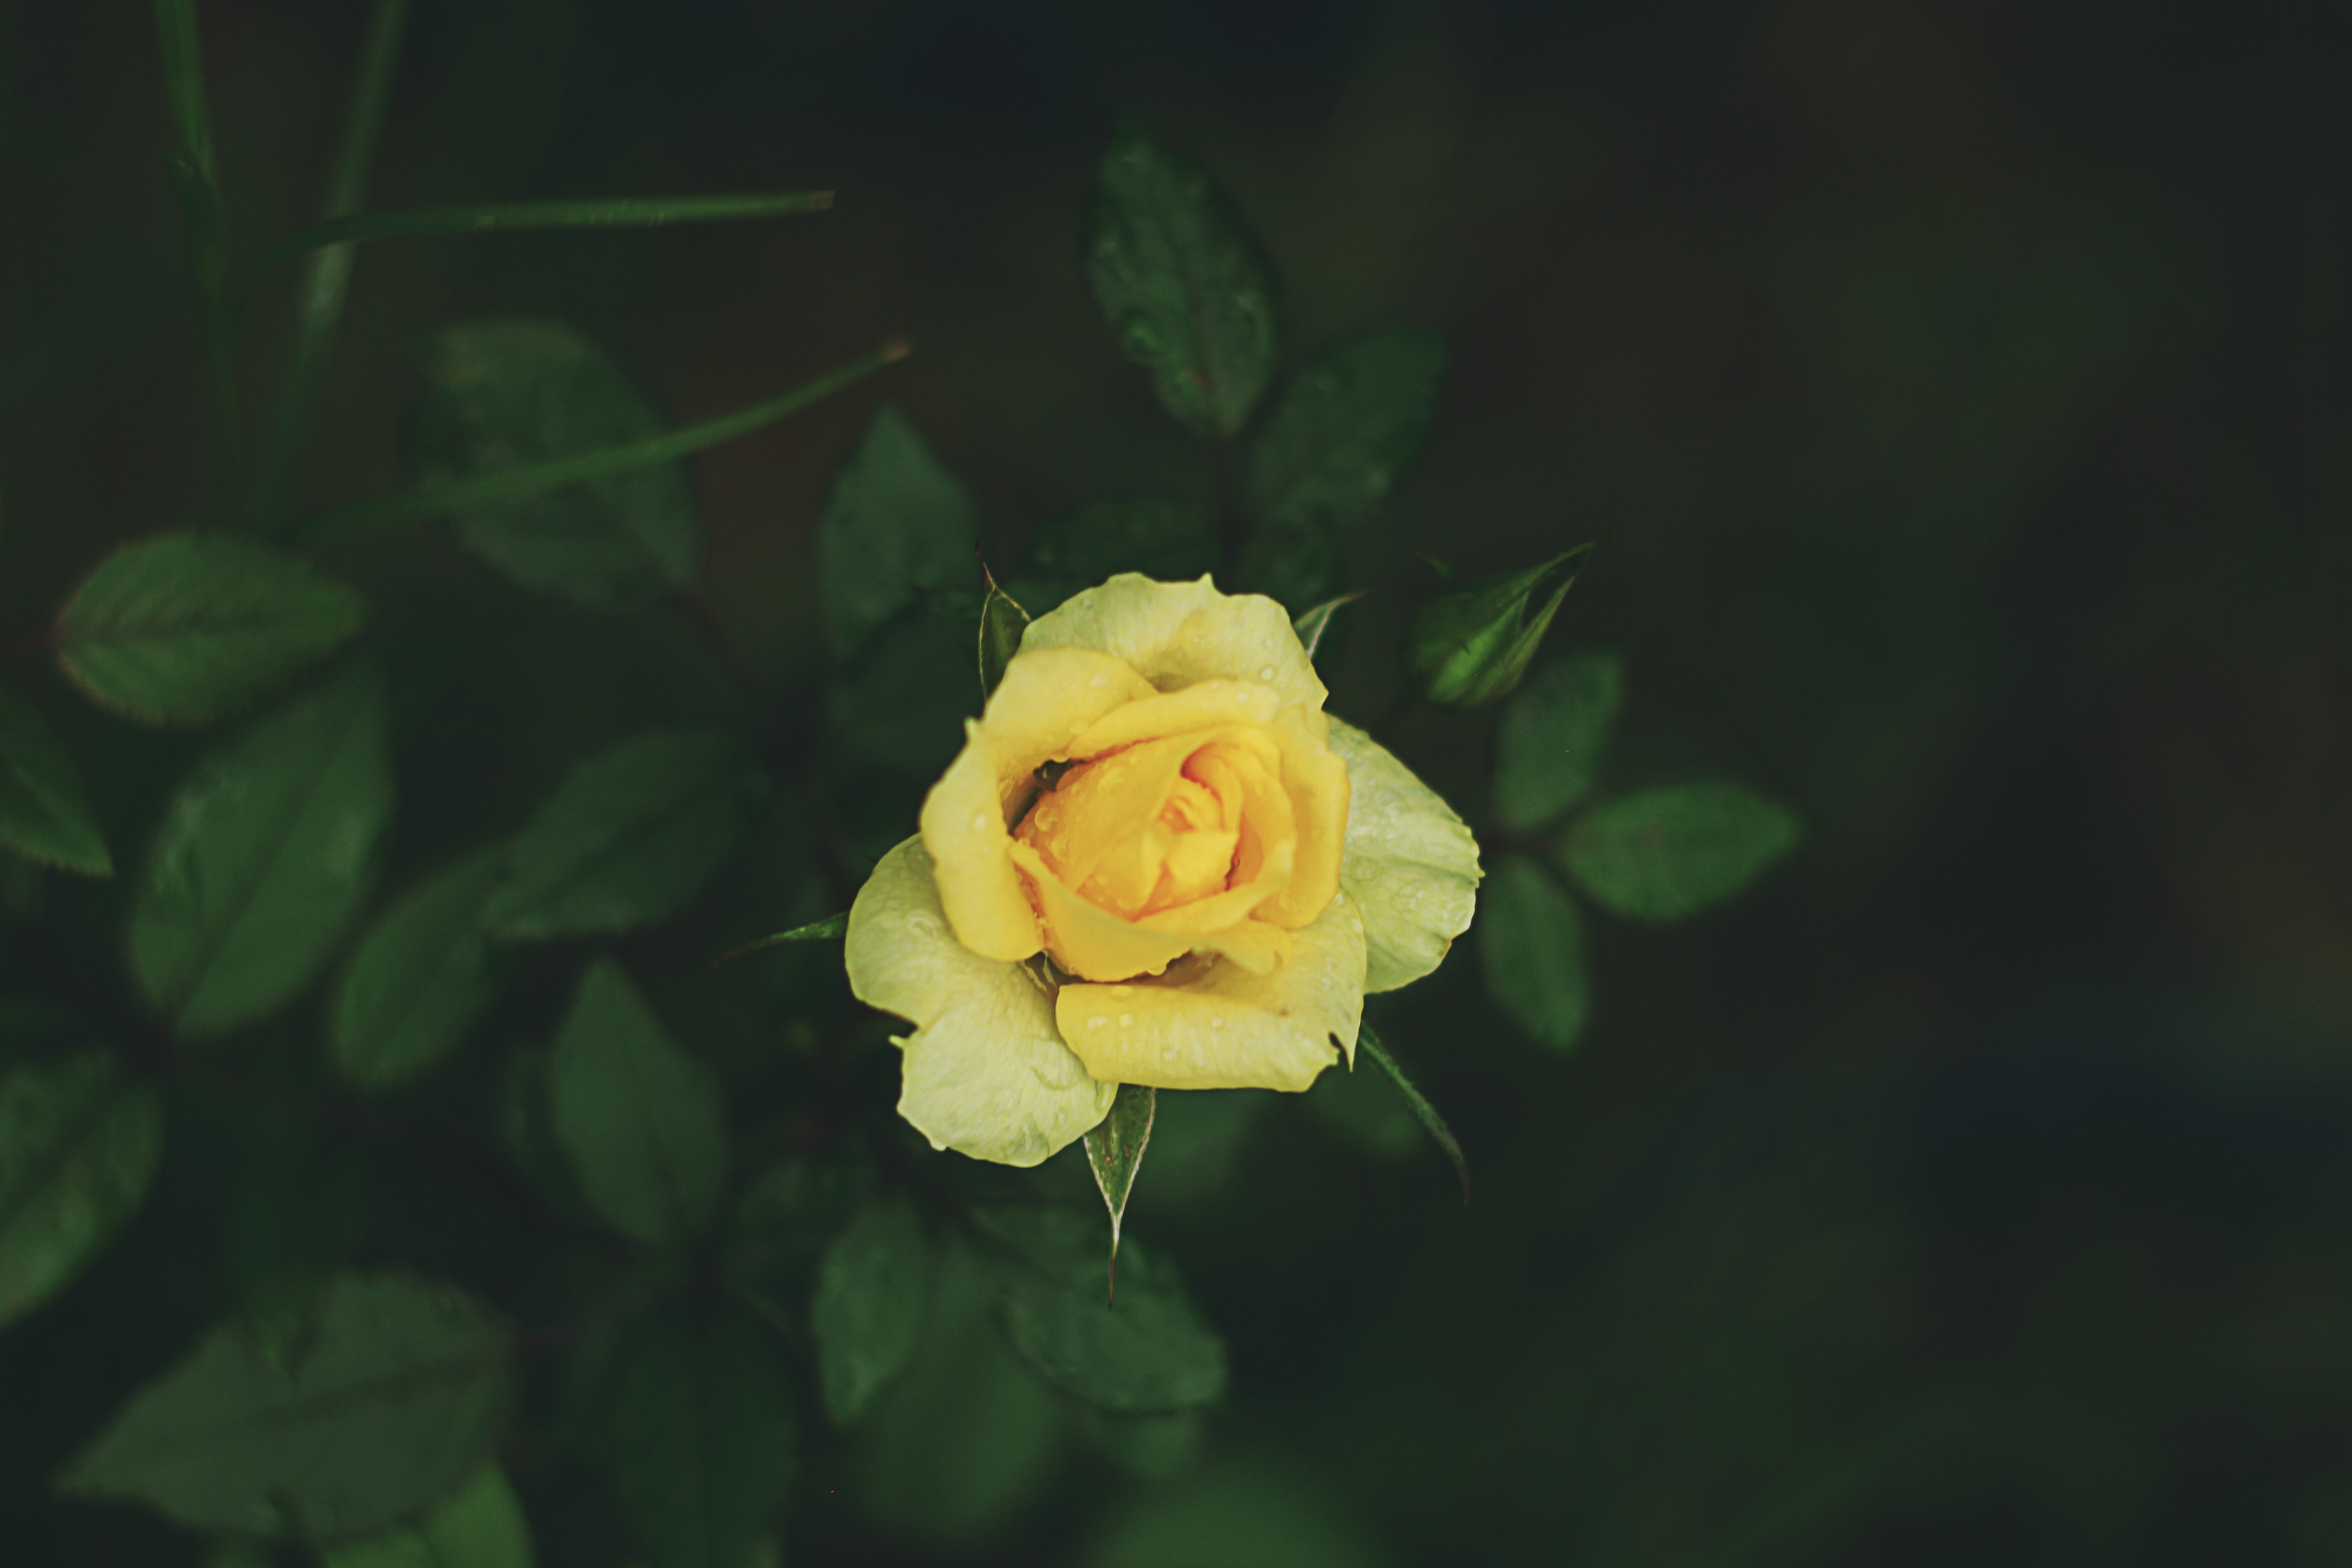 A close-up of a yellow rose covered with raindrops